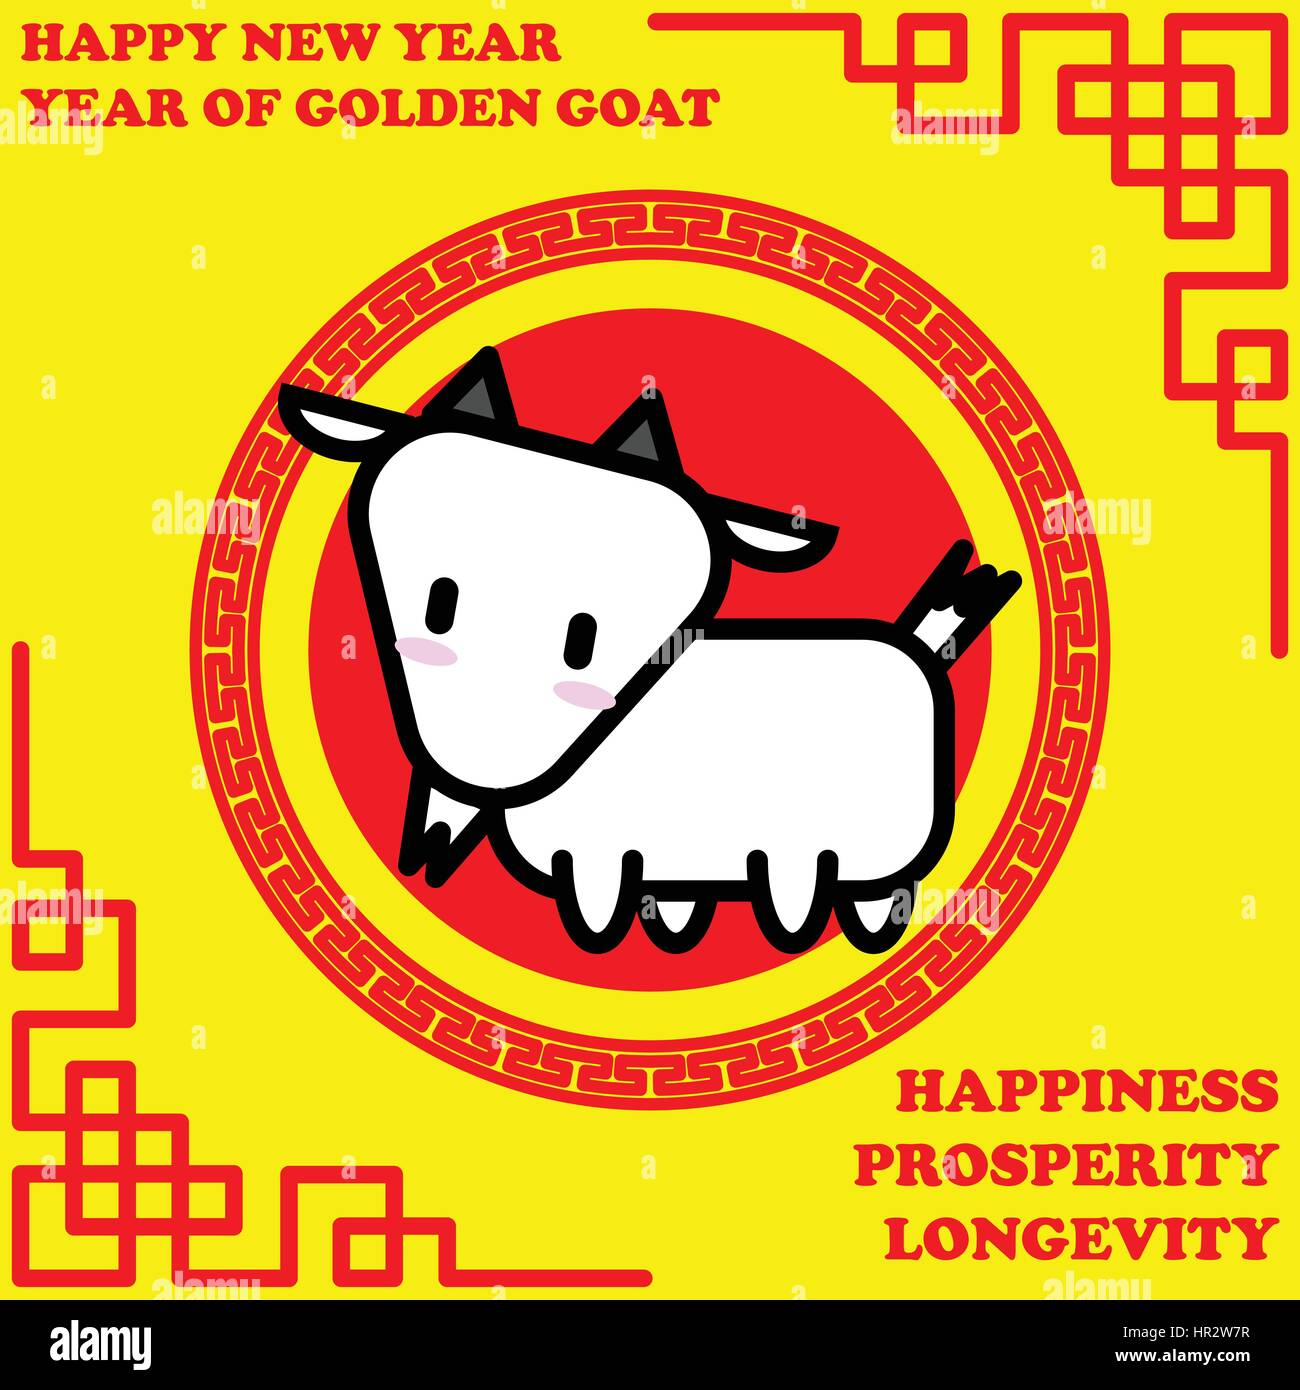 Happy new year of Golden Goat year on golden background and good word for life - Stock Image